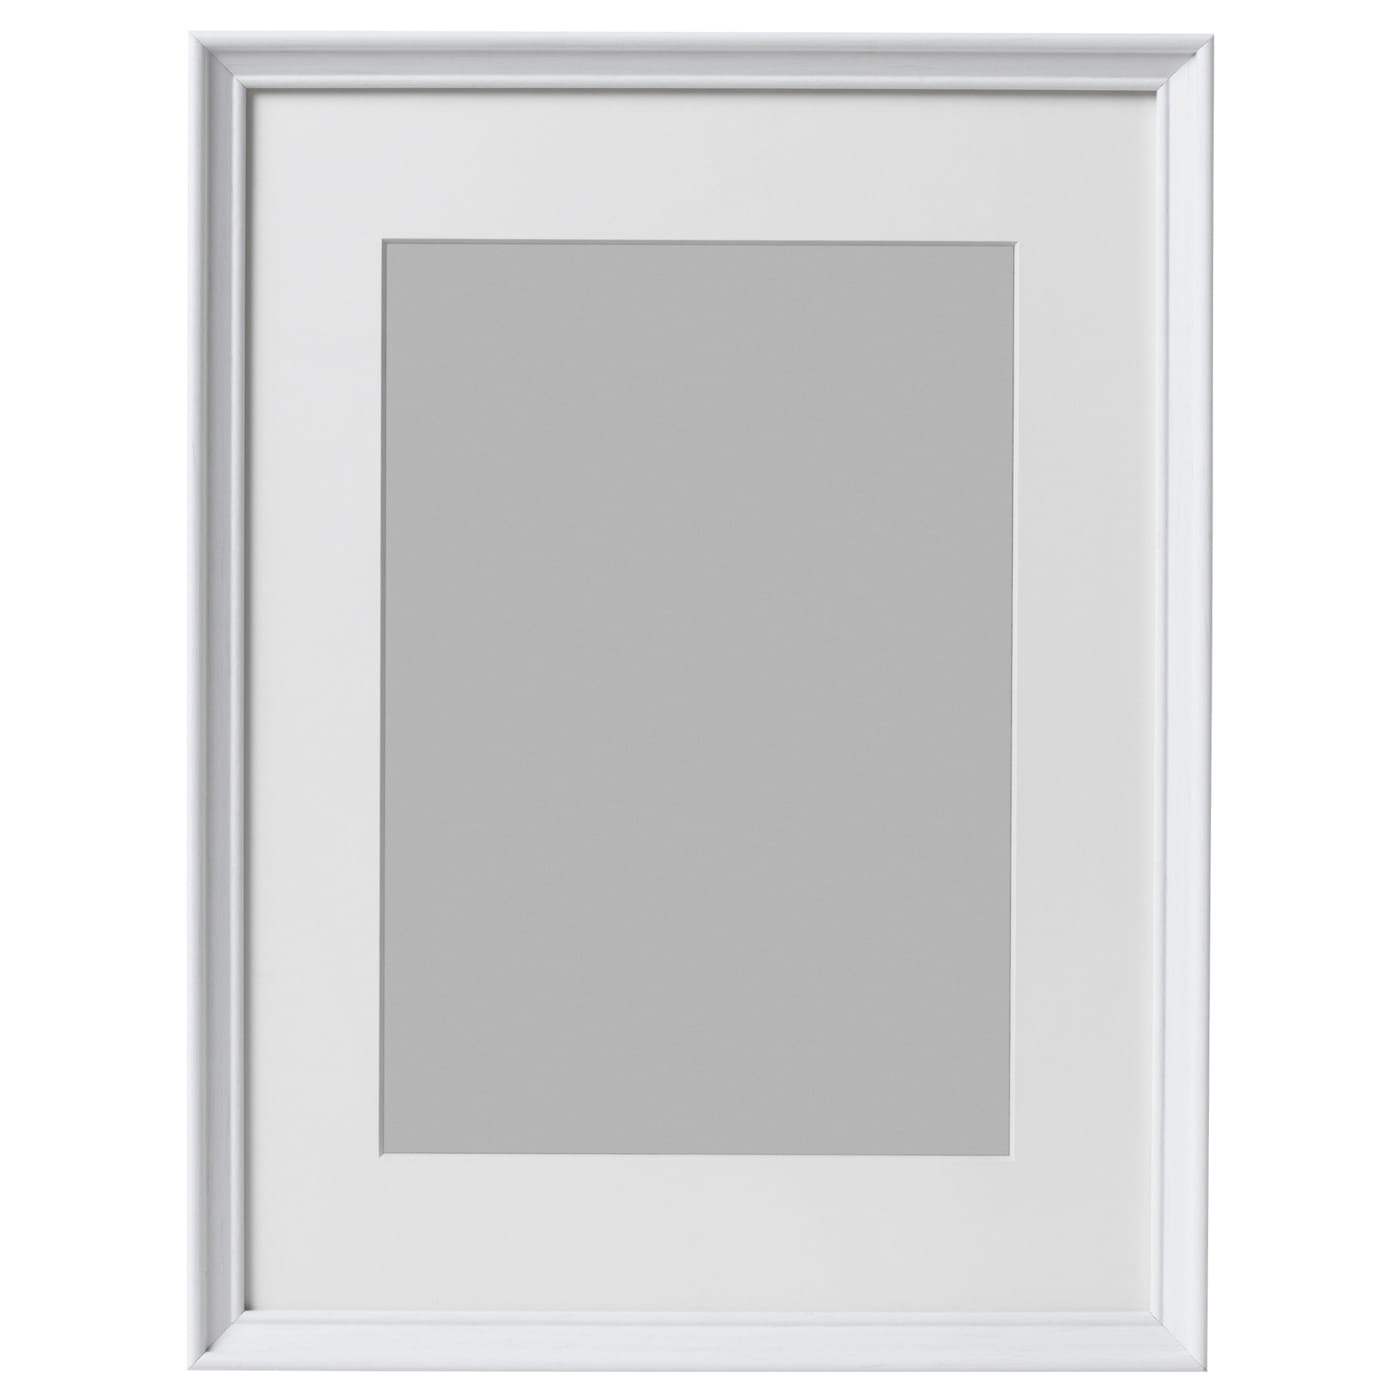 Knopp ng frame white stained 30x40 cm ikea for Ikea frames